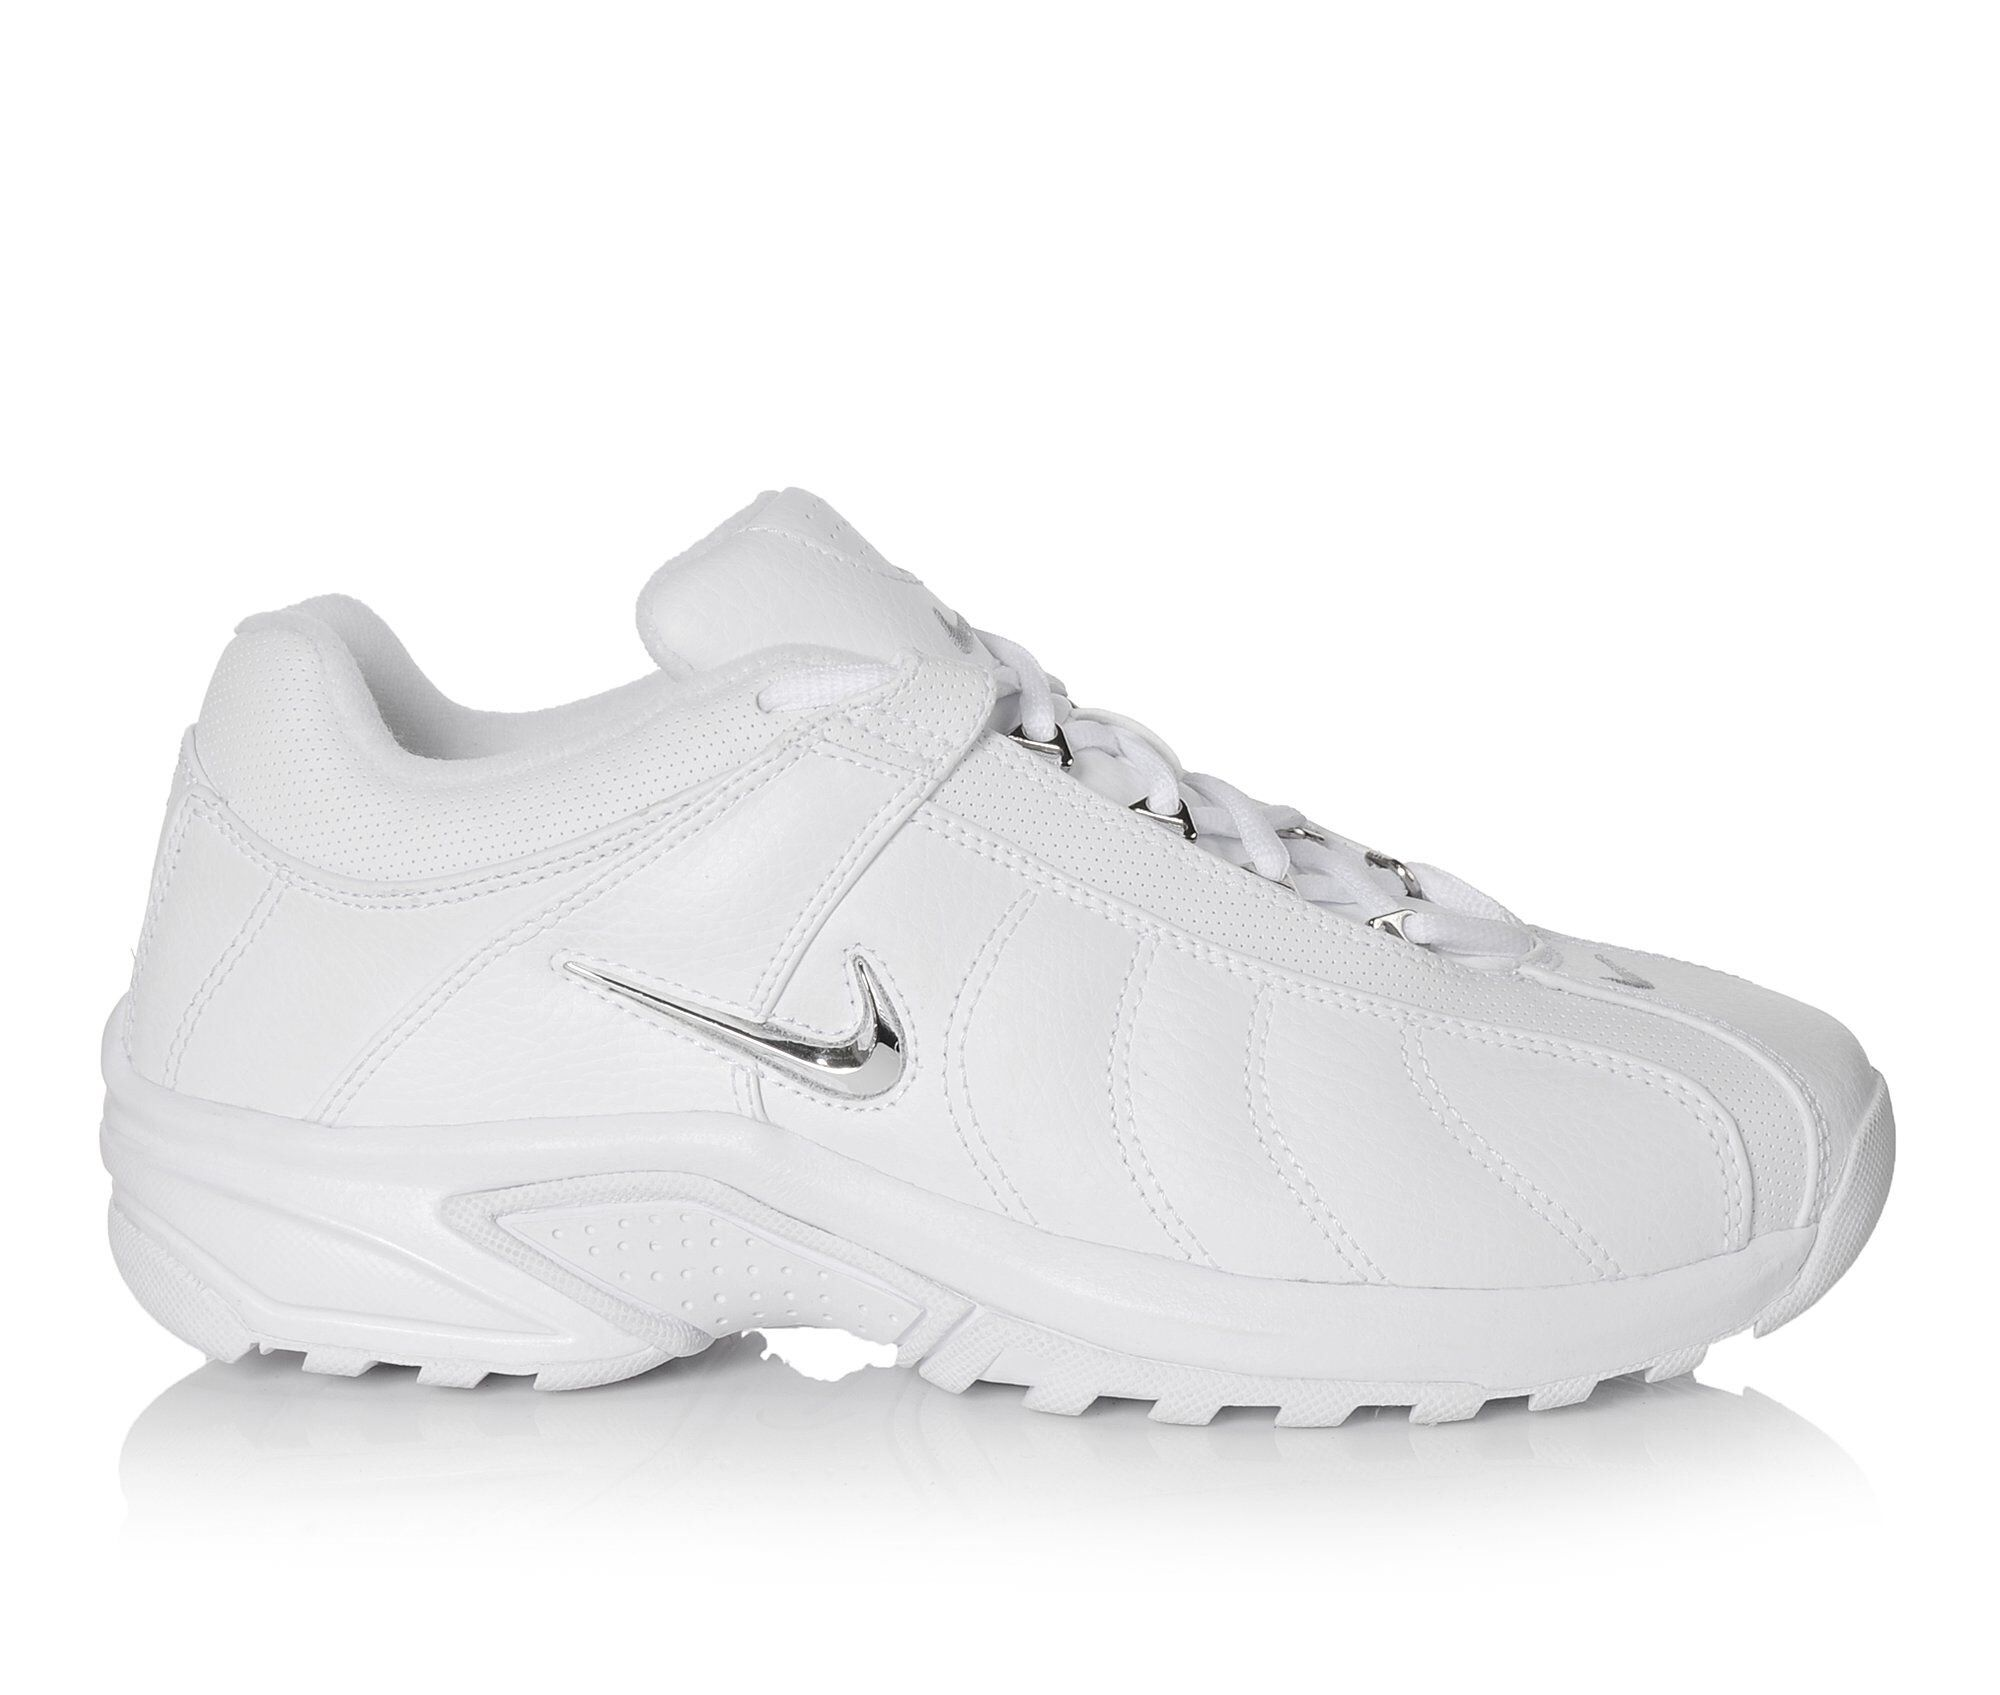 Nike Men's VXT Training Shoes - Men's size 8 - White